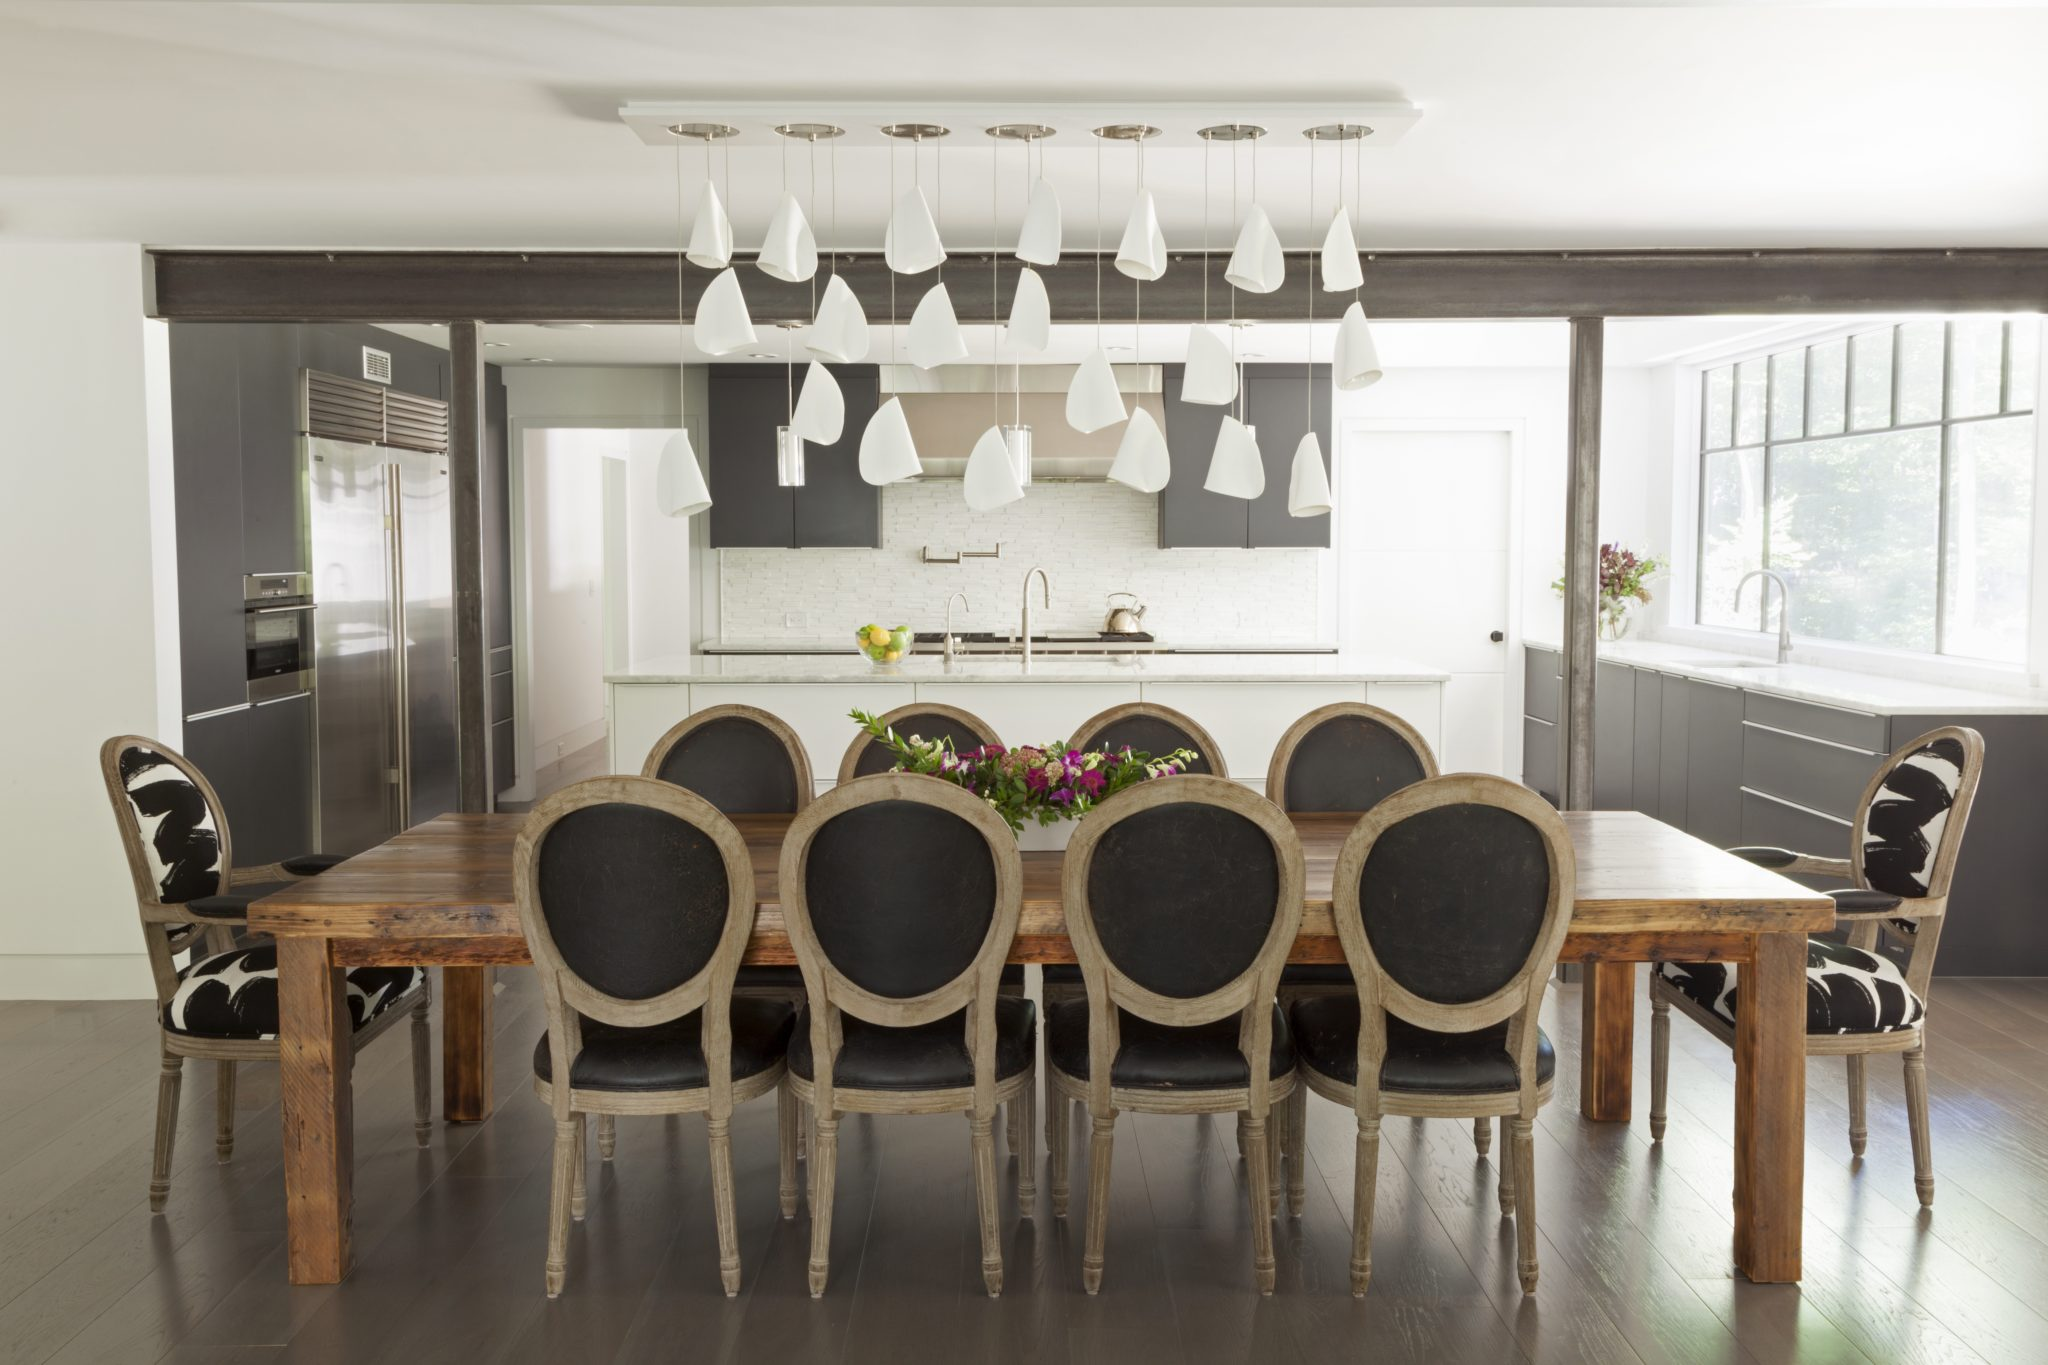 Open Dining Room - Unique White Chandelier - Allendale, NJ Residence by Jenny Madden Design